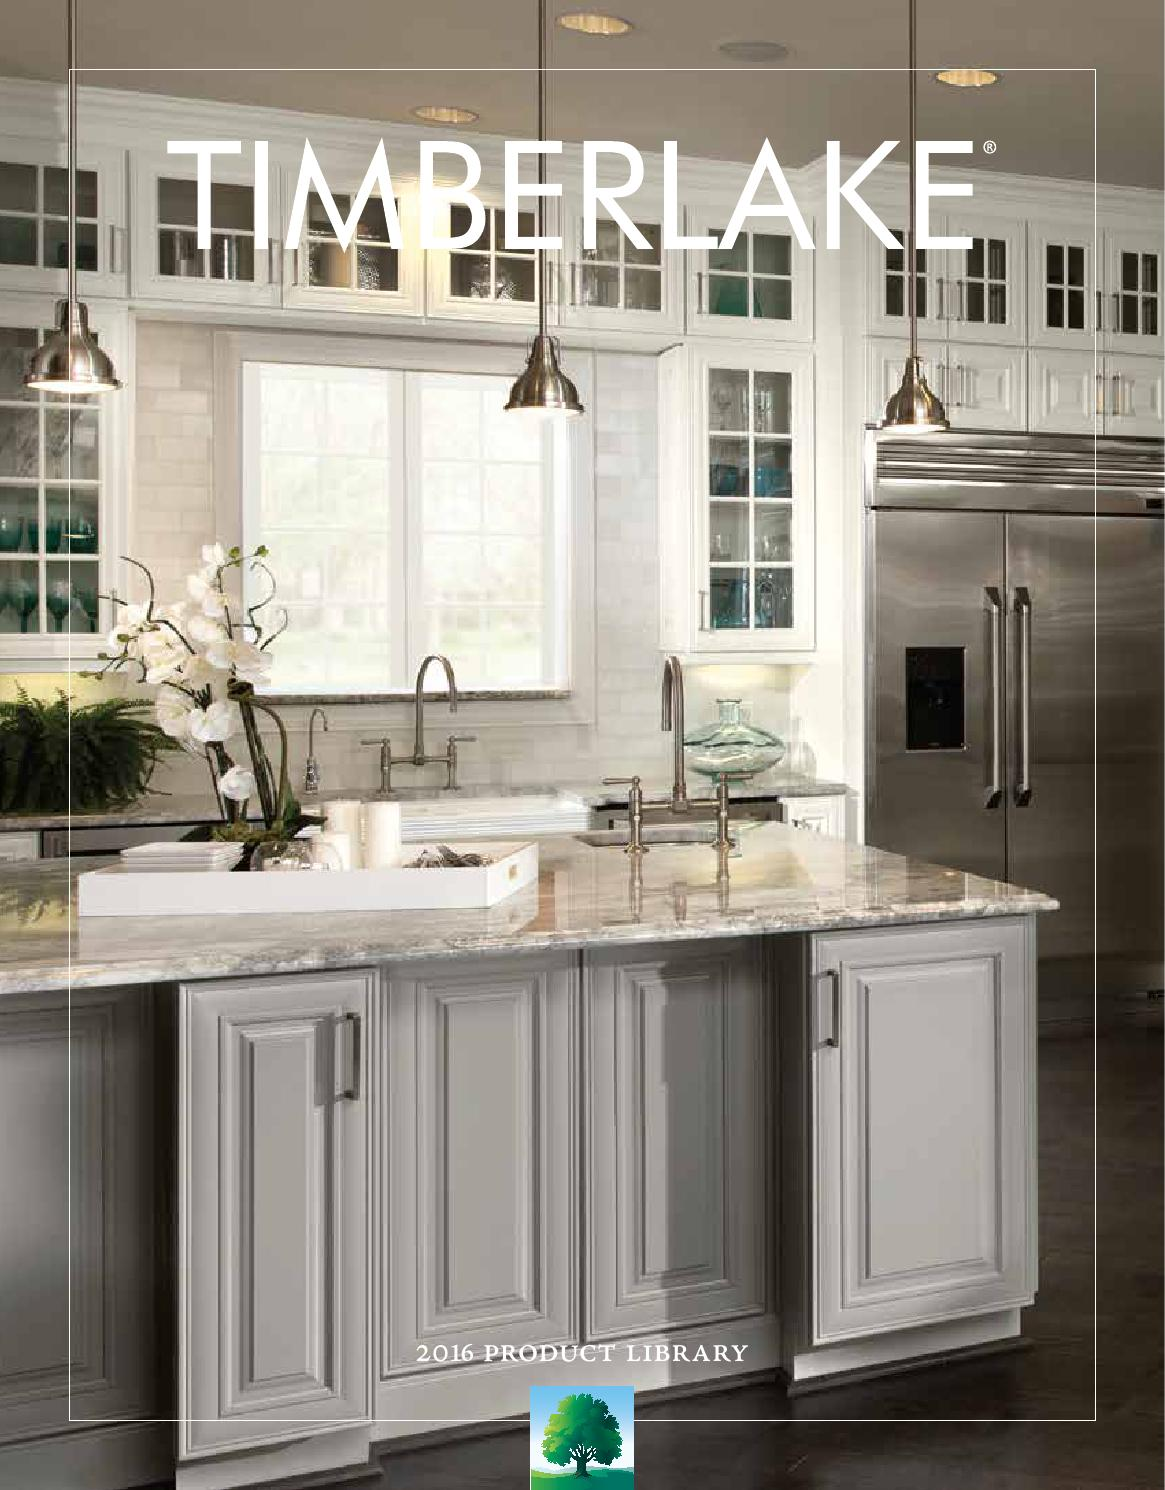 1000 images about timberlake cabinetry on pinterest cherries